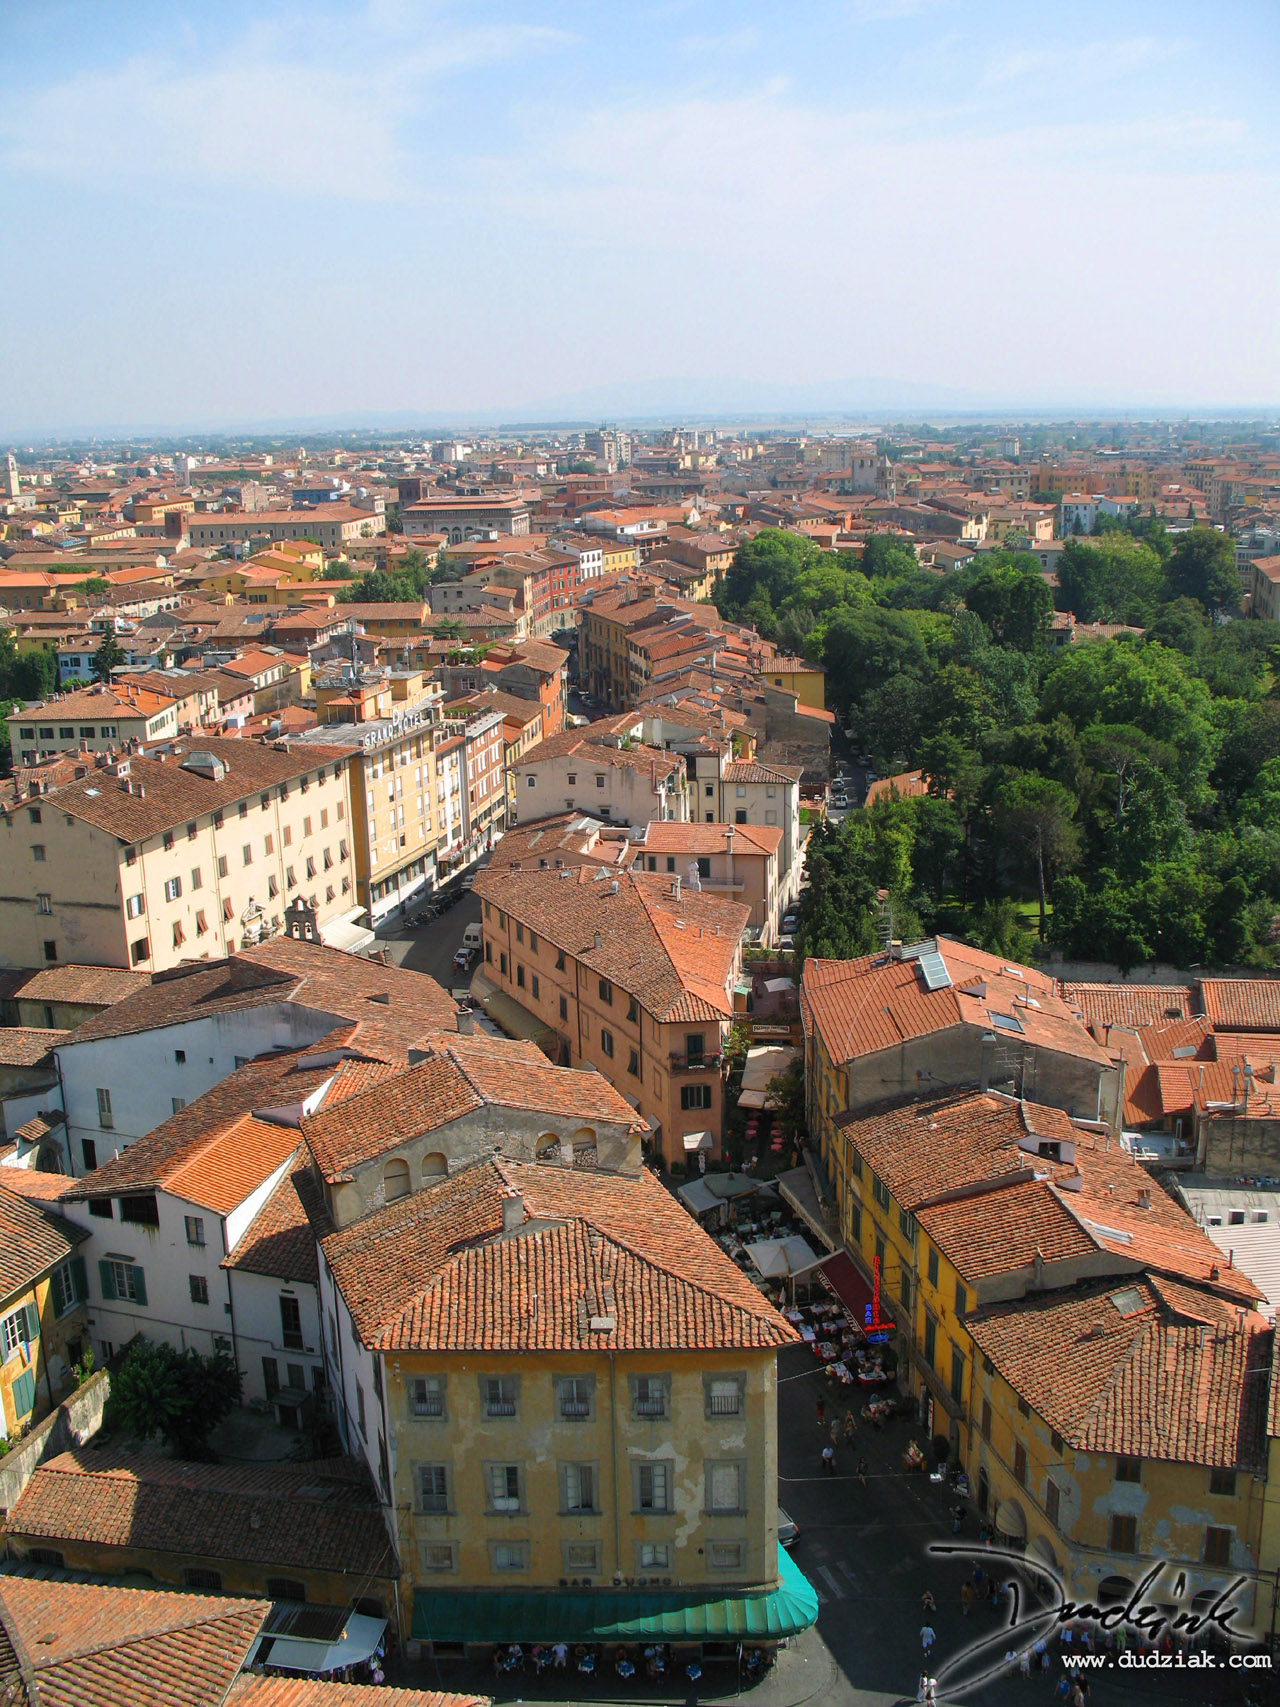 Picture of the city of Pisa.